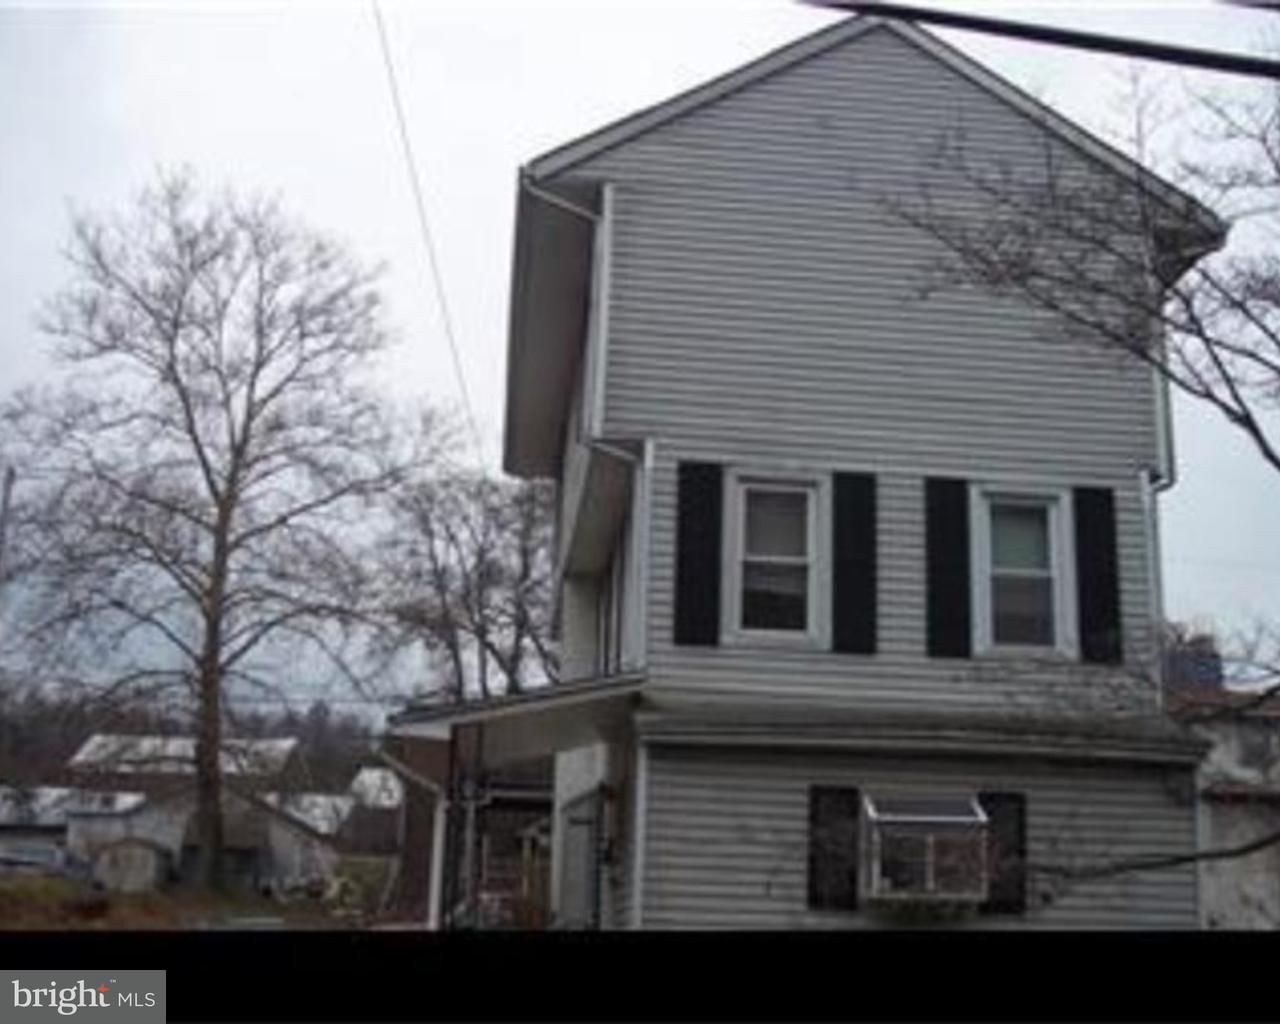 201 BROWN ST, BIRDSBORO - Listed at $95,000, BIRDSBORO